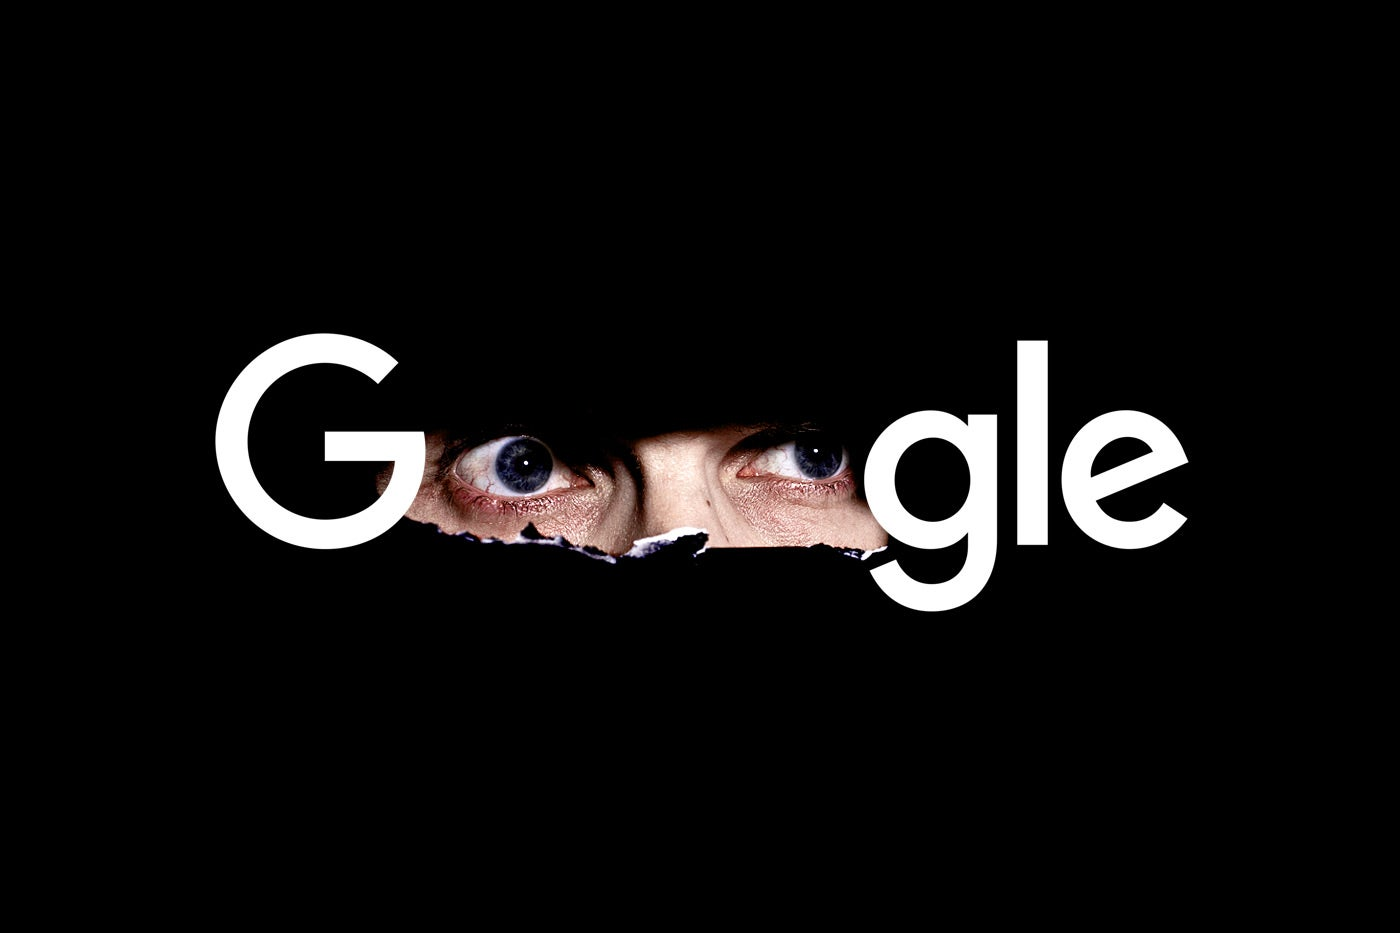 Google logo with the O's looking like spying eyes.